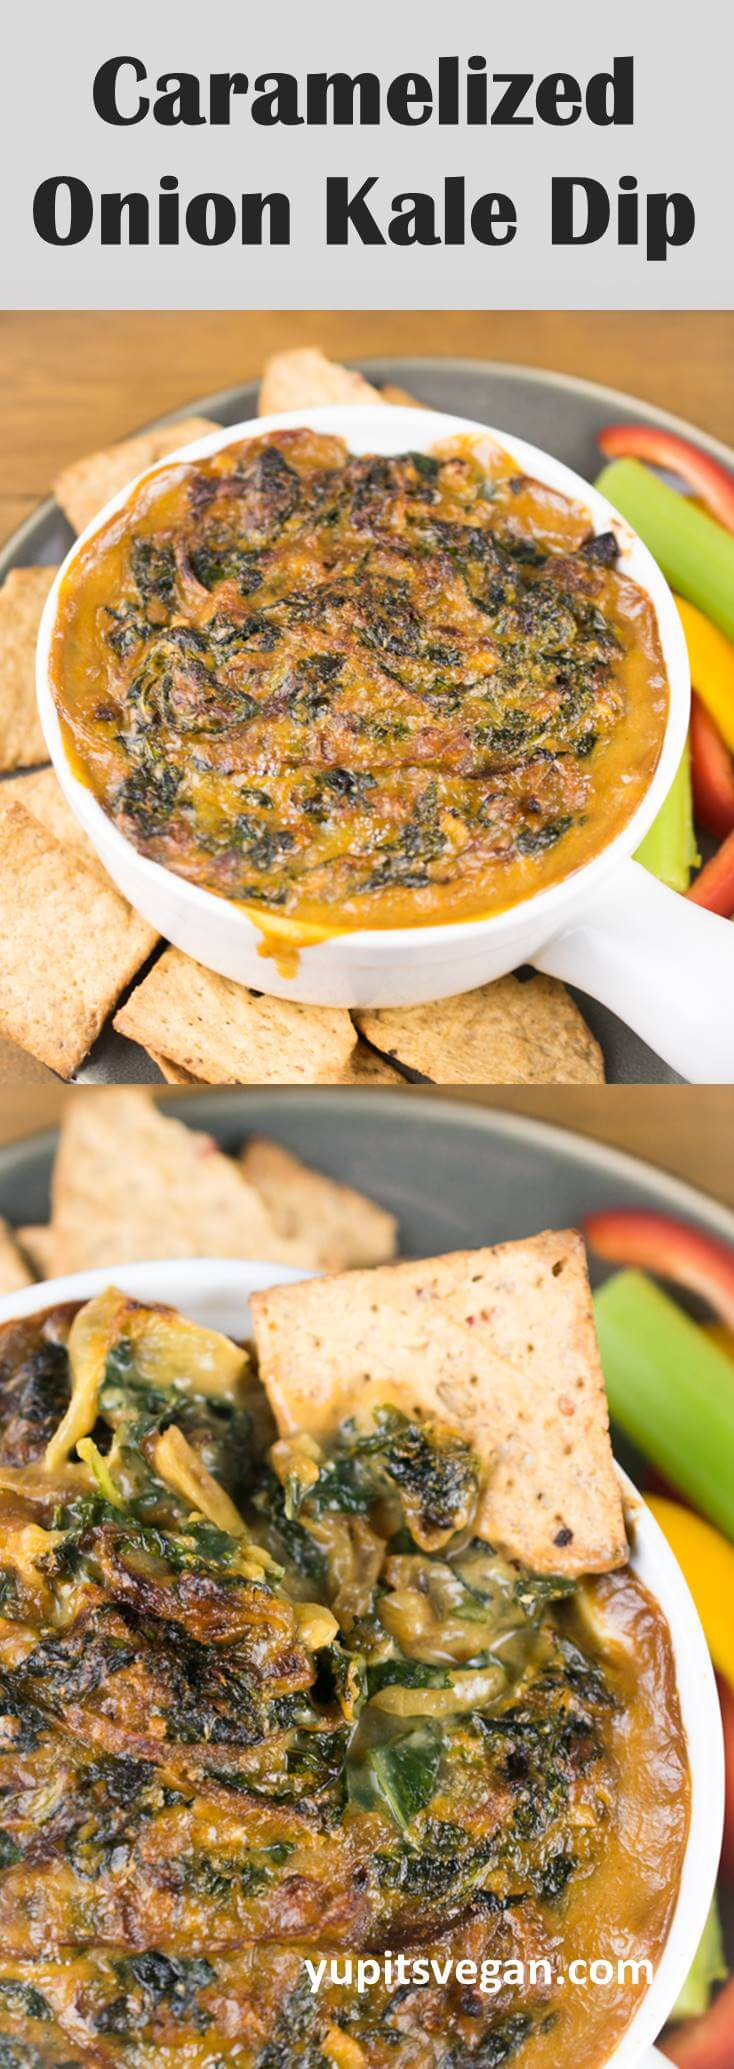 Vegan Caramelized Onion & Kale Dip: Cheesy, gluten-free, dairy-free, creamy dip with caramelized onions, garlic, and kale. Cooks in one pot!